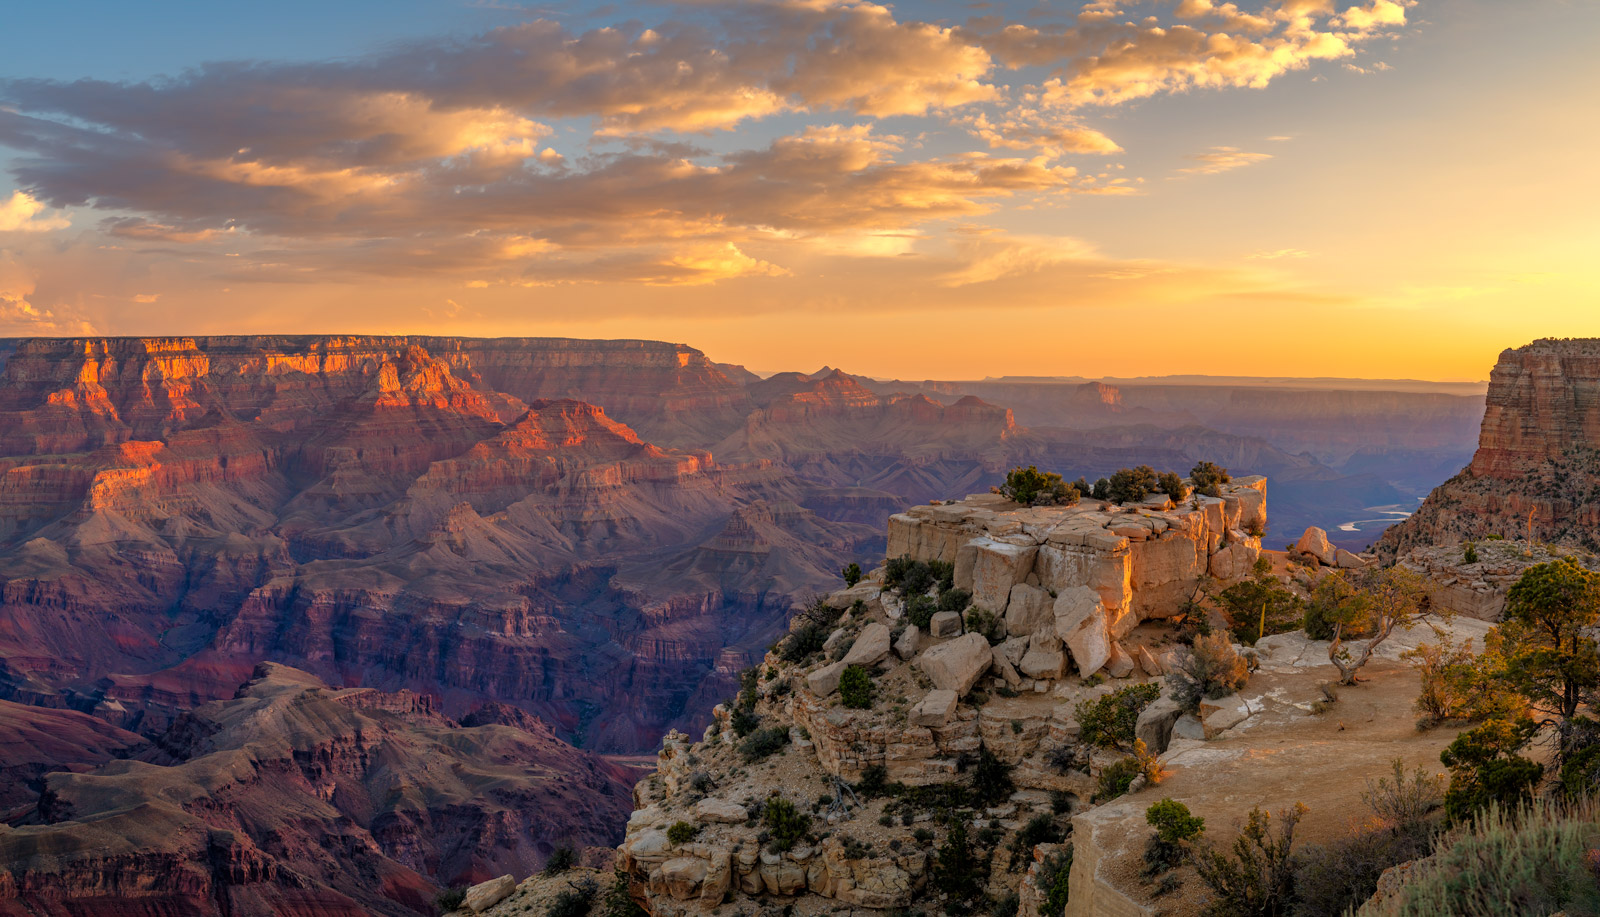 A Limited Edition, Fine Art photograph of a stunning, early morning sunrise at Moran Point at Grand Canyon National Park in Arizona...